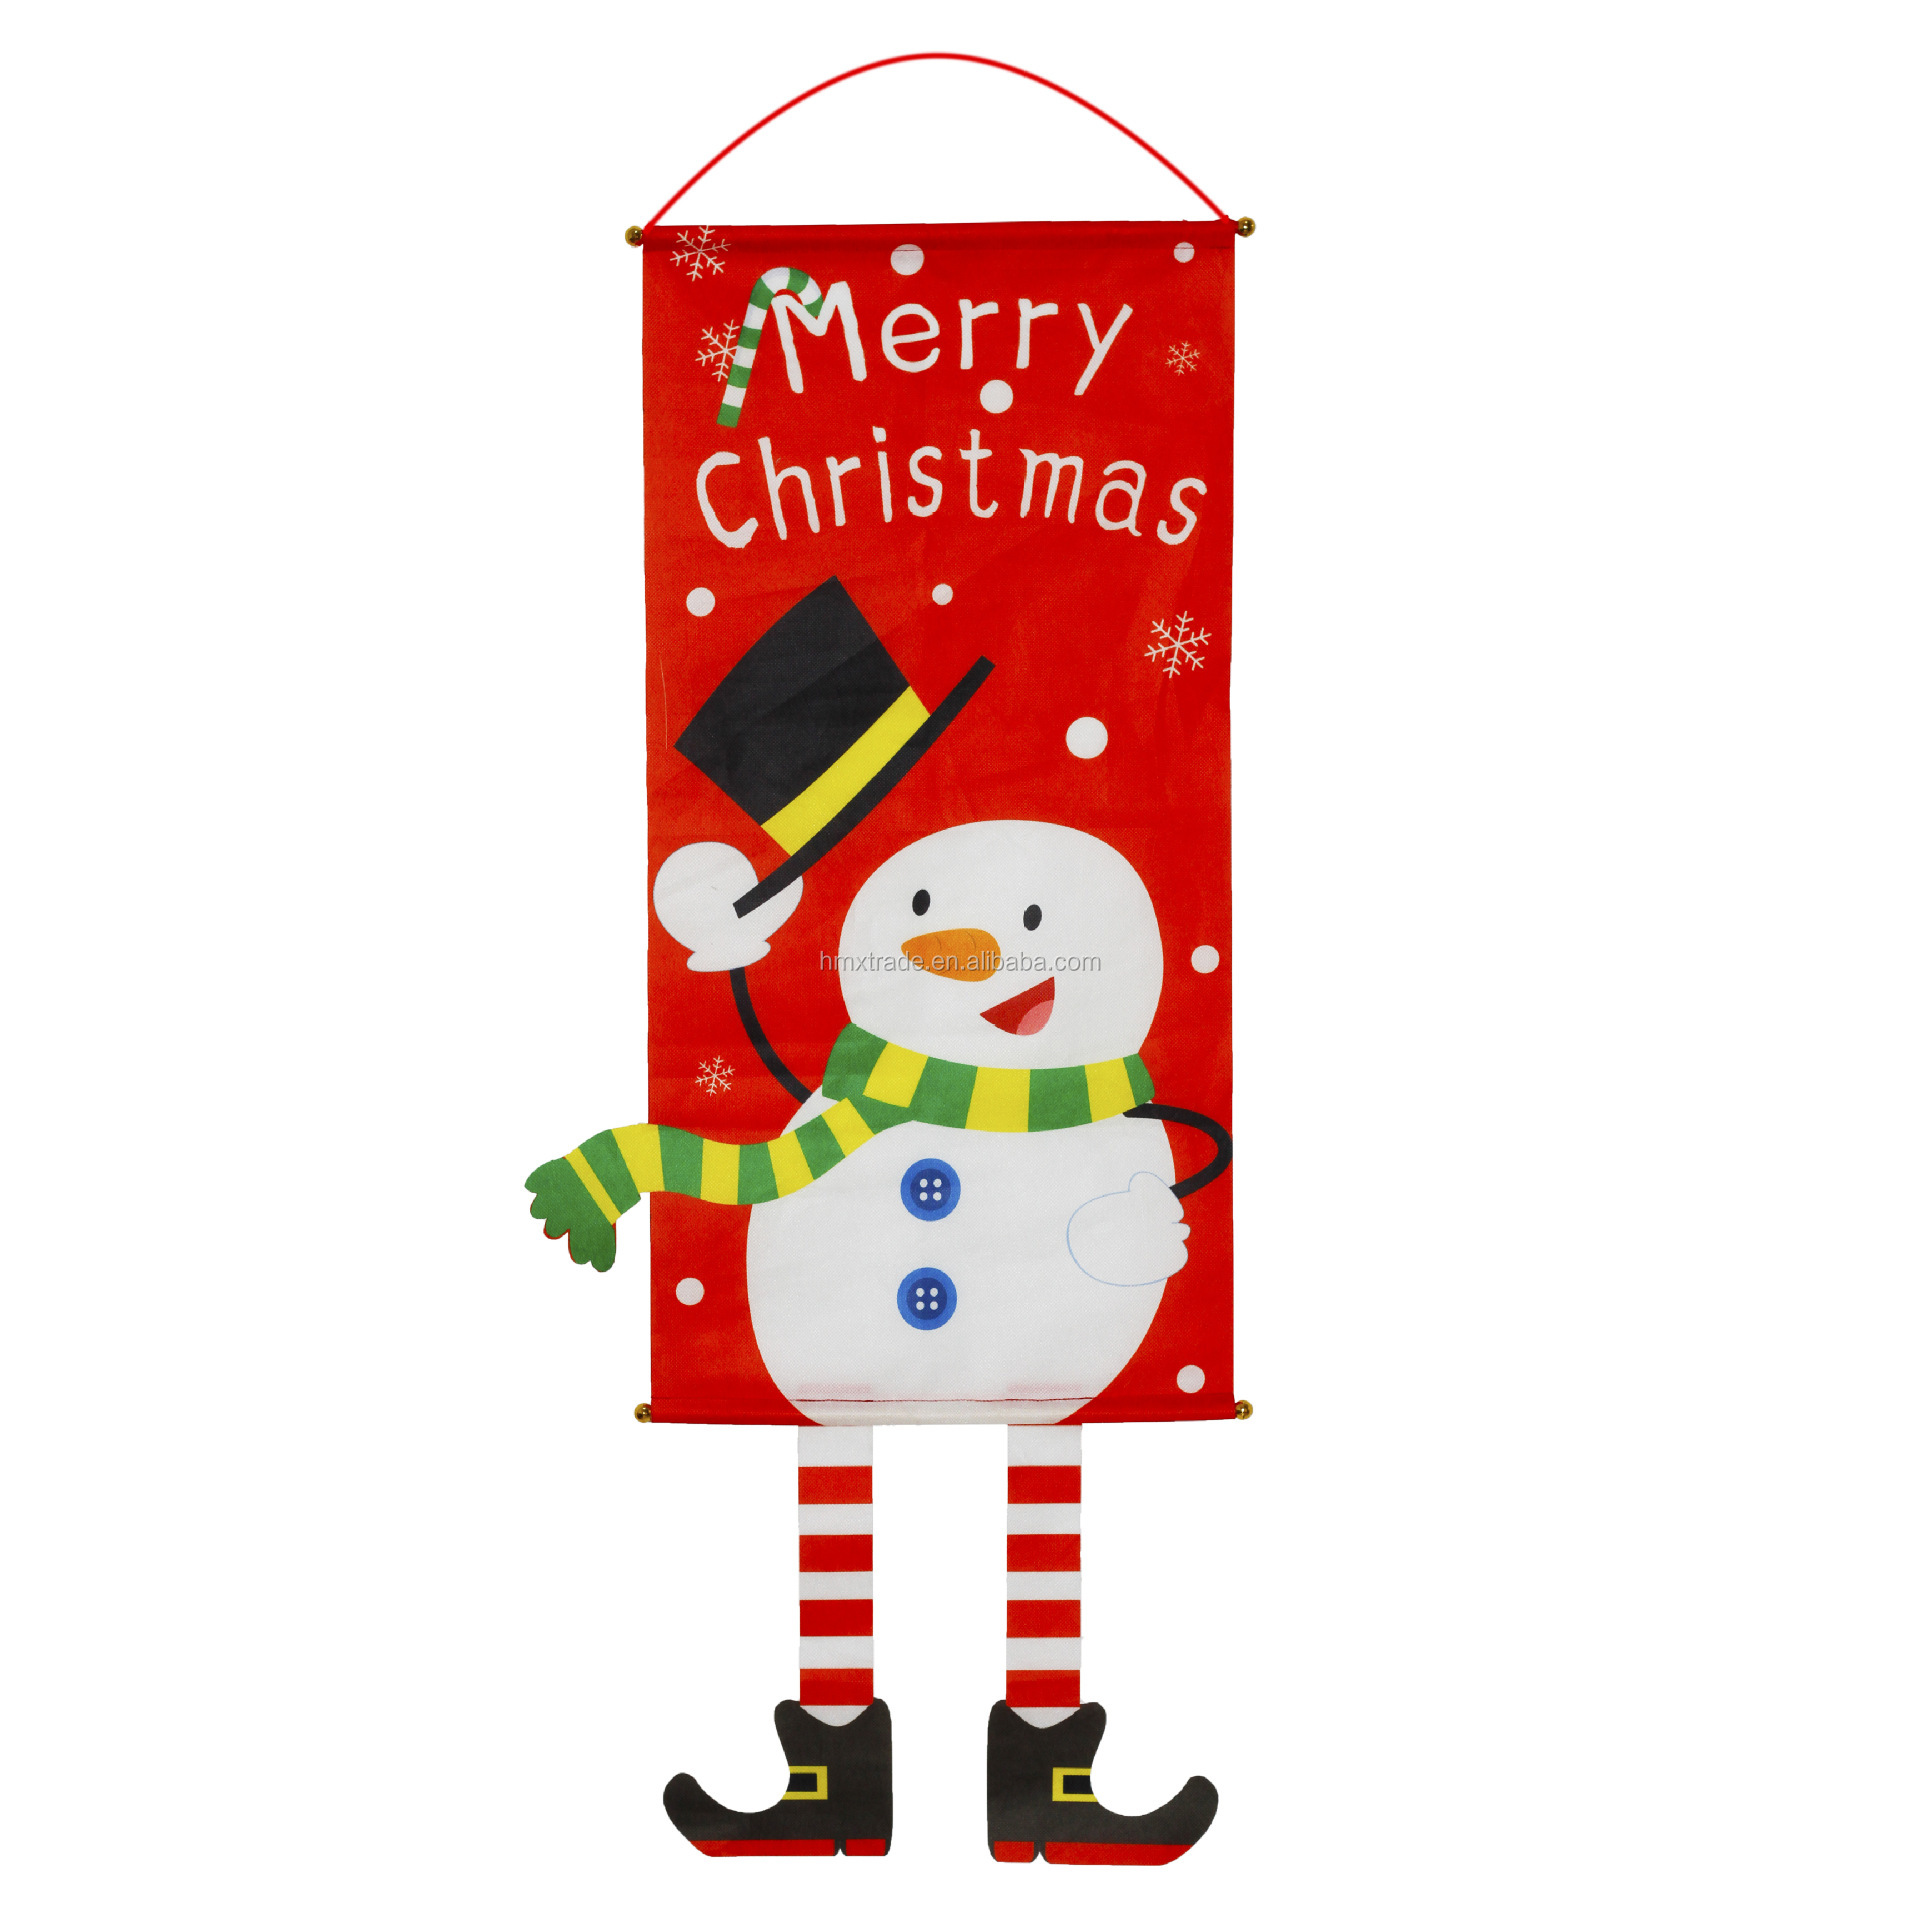 Merry Christmas Banner Outdoor Indoor Decorations Welcome Christmas Porch Sign Red Xmas Decor Hanging Banner for Home Wall Door